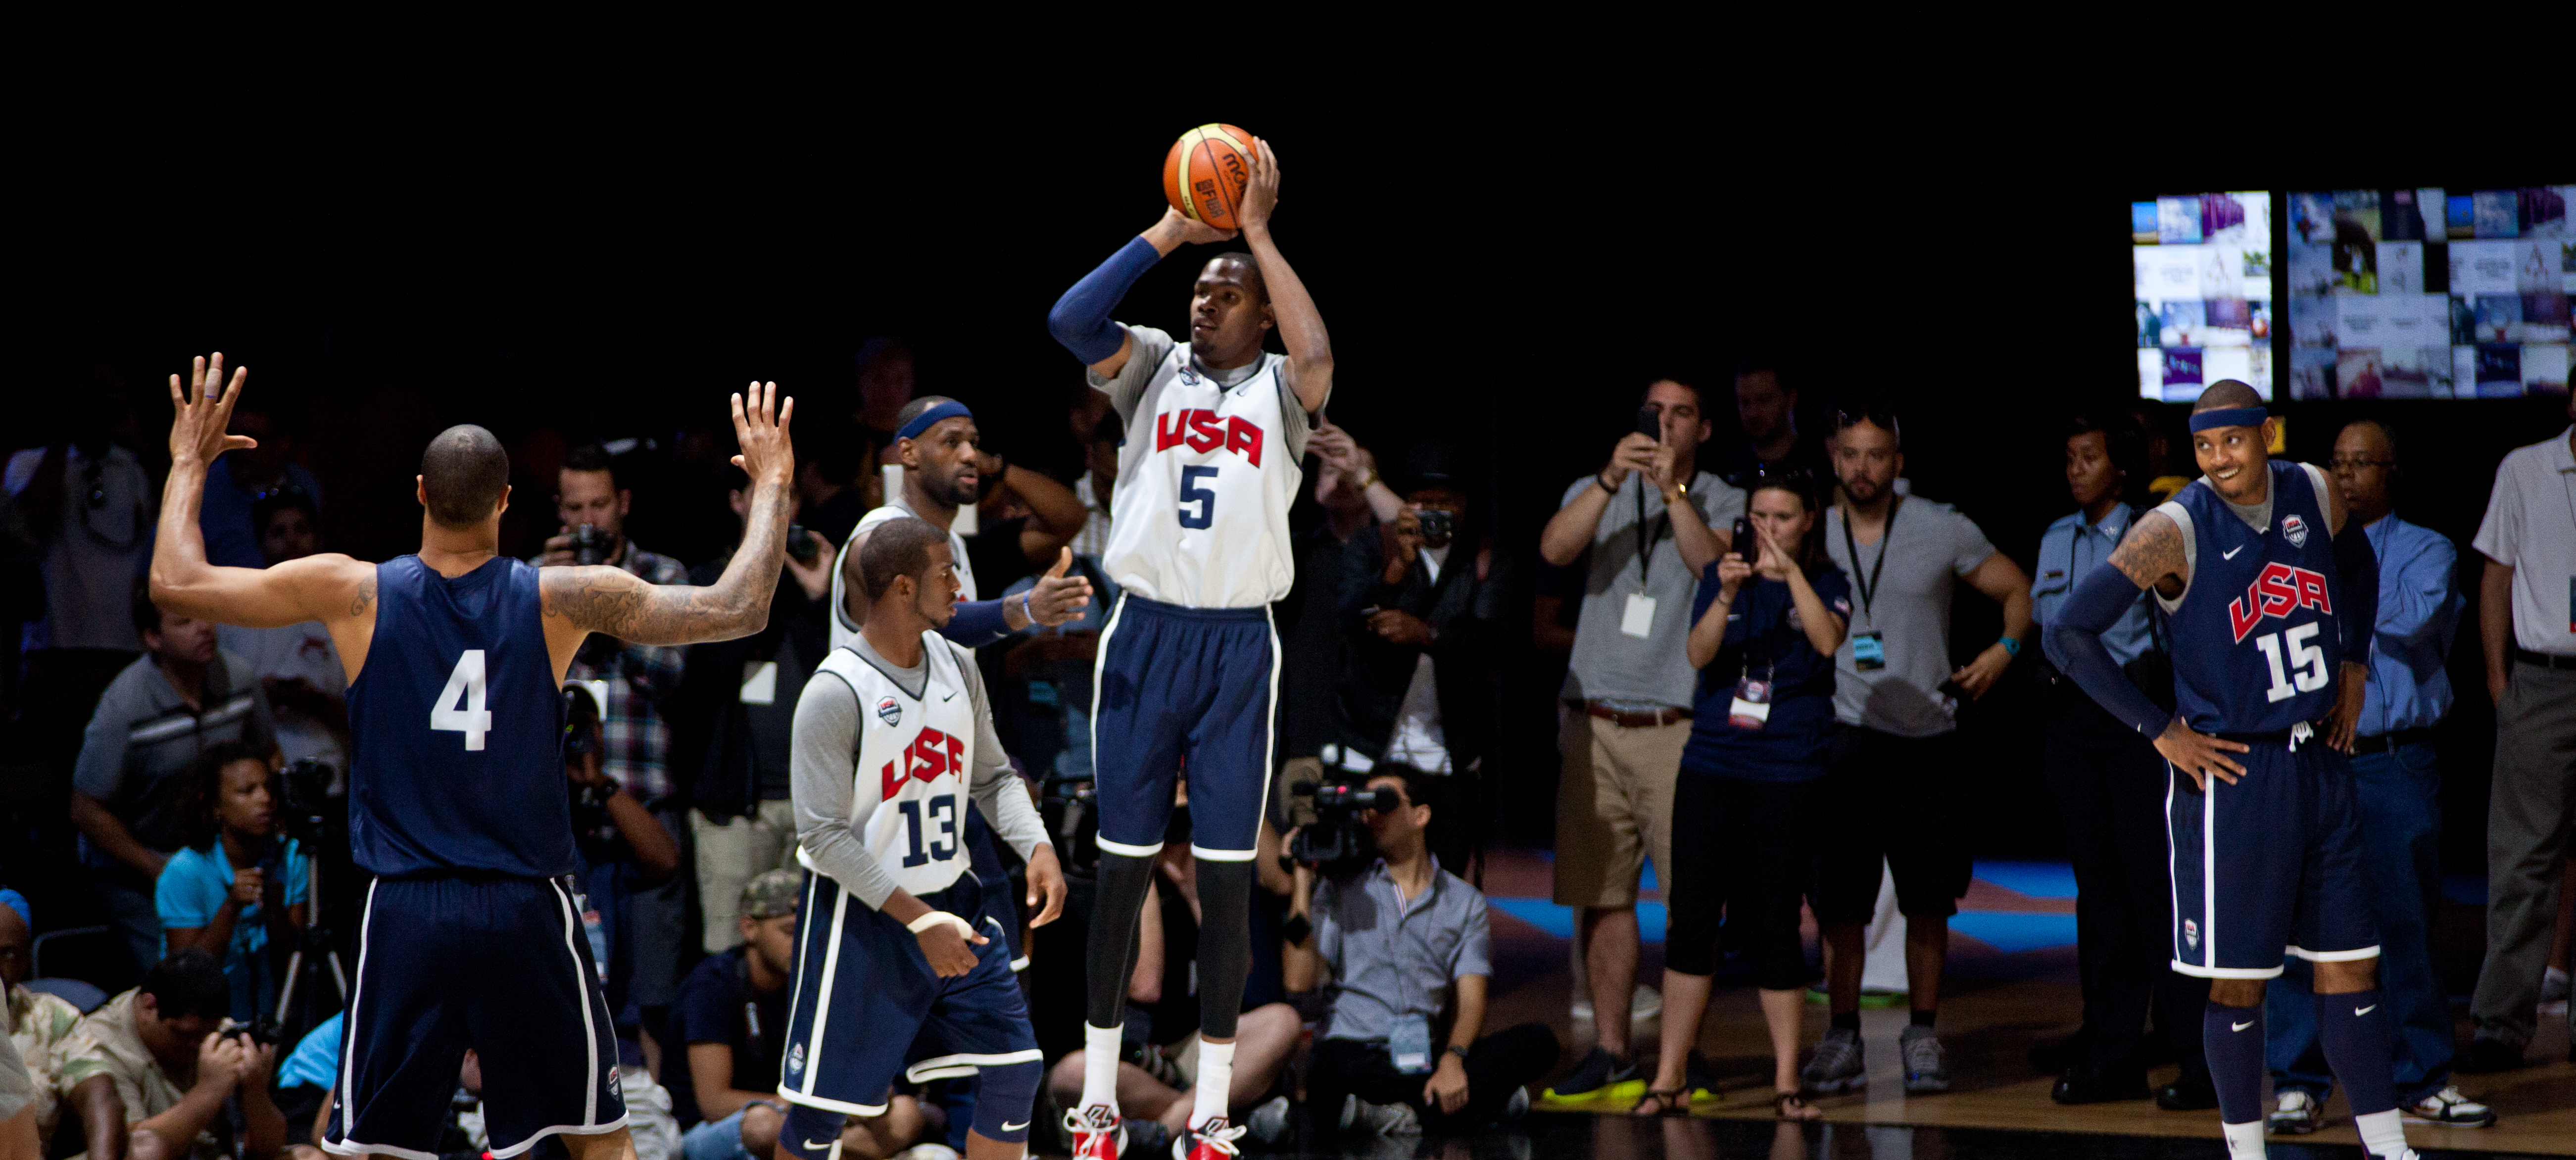 File:Kevin Durant jumpshoot.jpg - Wikimedia Commons